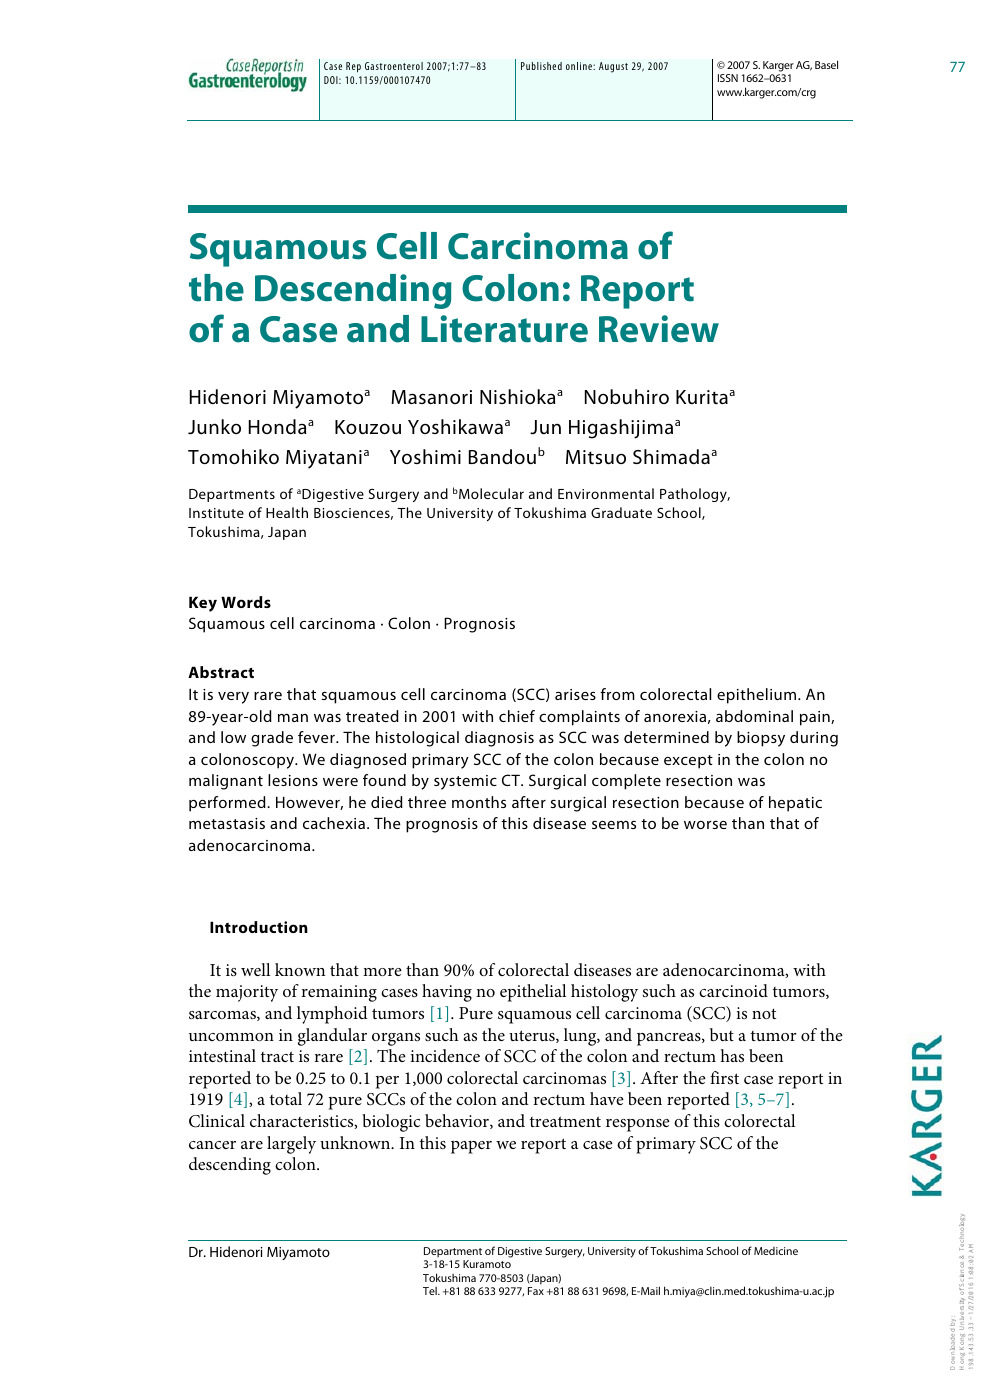 Squamous Cell Carcinoma Of The Descending Colon Report Of A Case And Literature Review Topic Of Research Paper In Clinical Medicine Download Scholarly Article Pdf And Read For Free On Cyberleninka